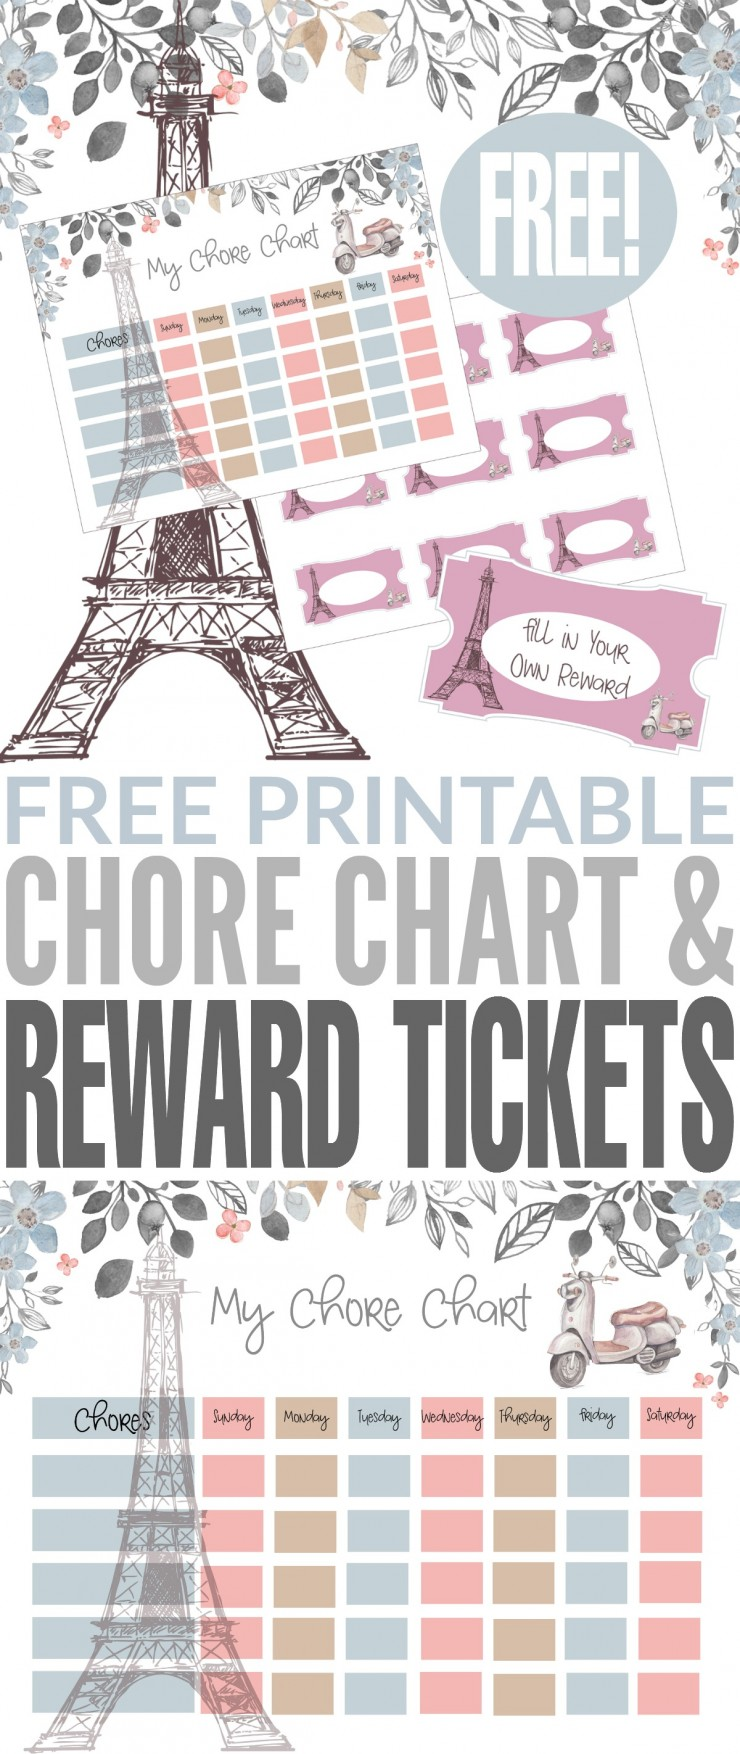 These Paris themed Free Printable Chore Chart & Reward Tickets are so cute don't you think? They are a great way to encourage your children to track and complete chores.